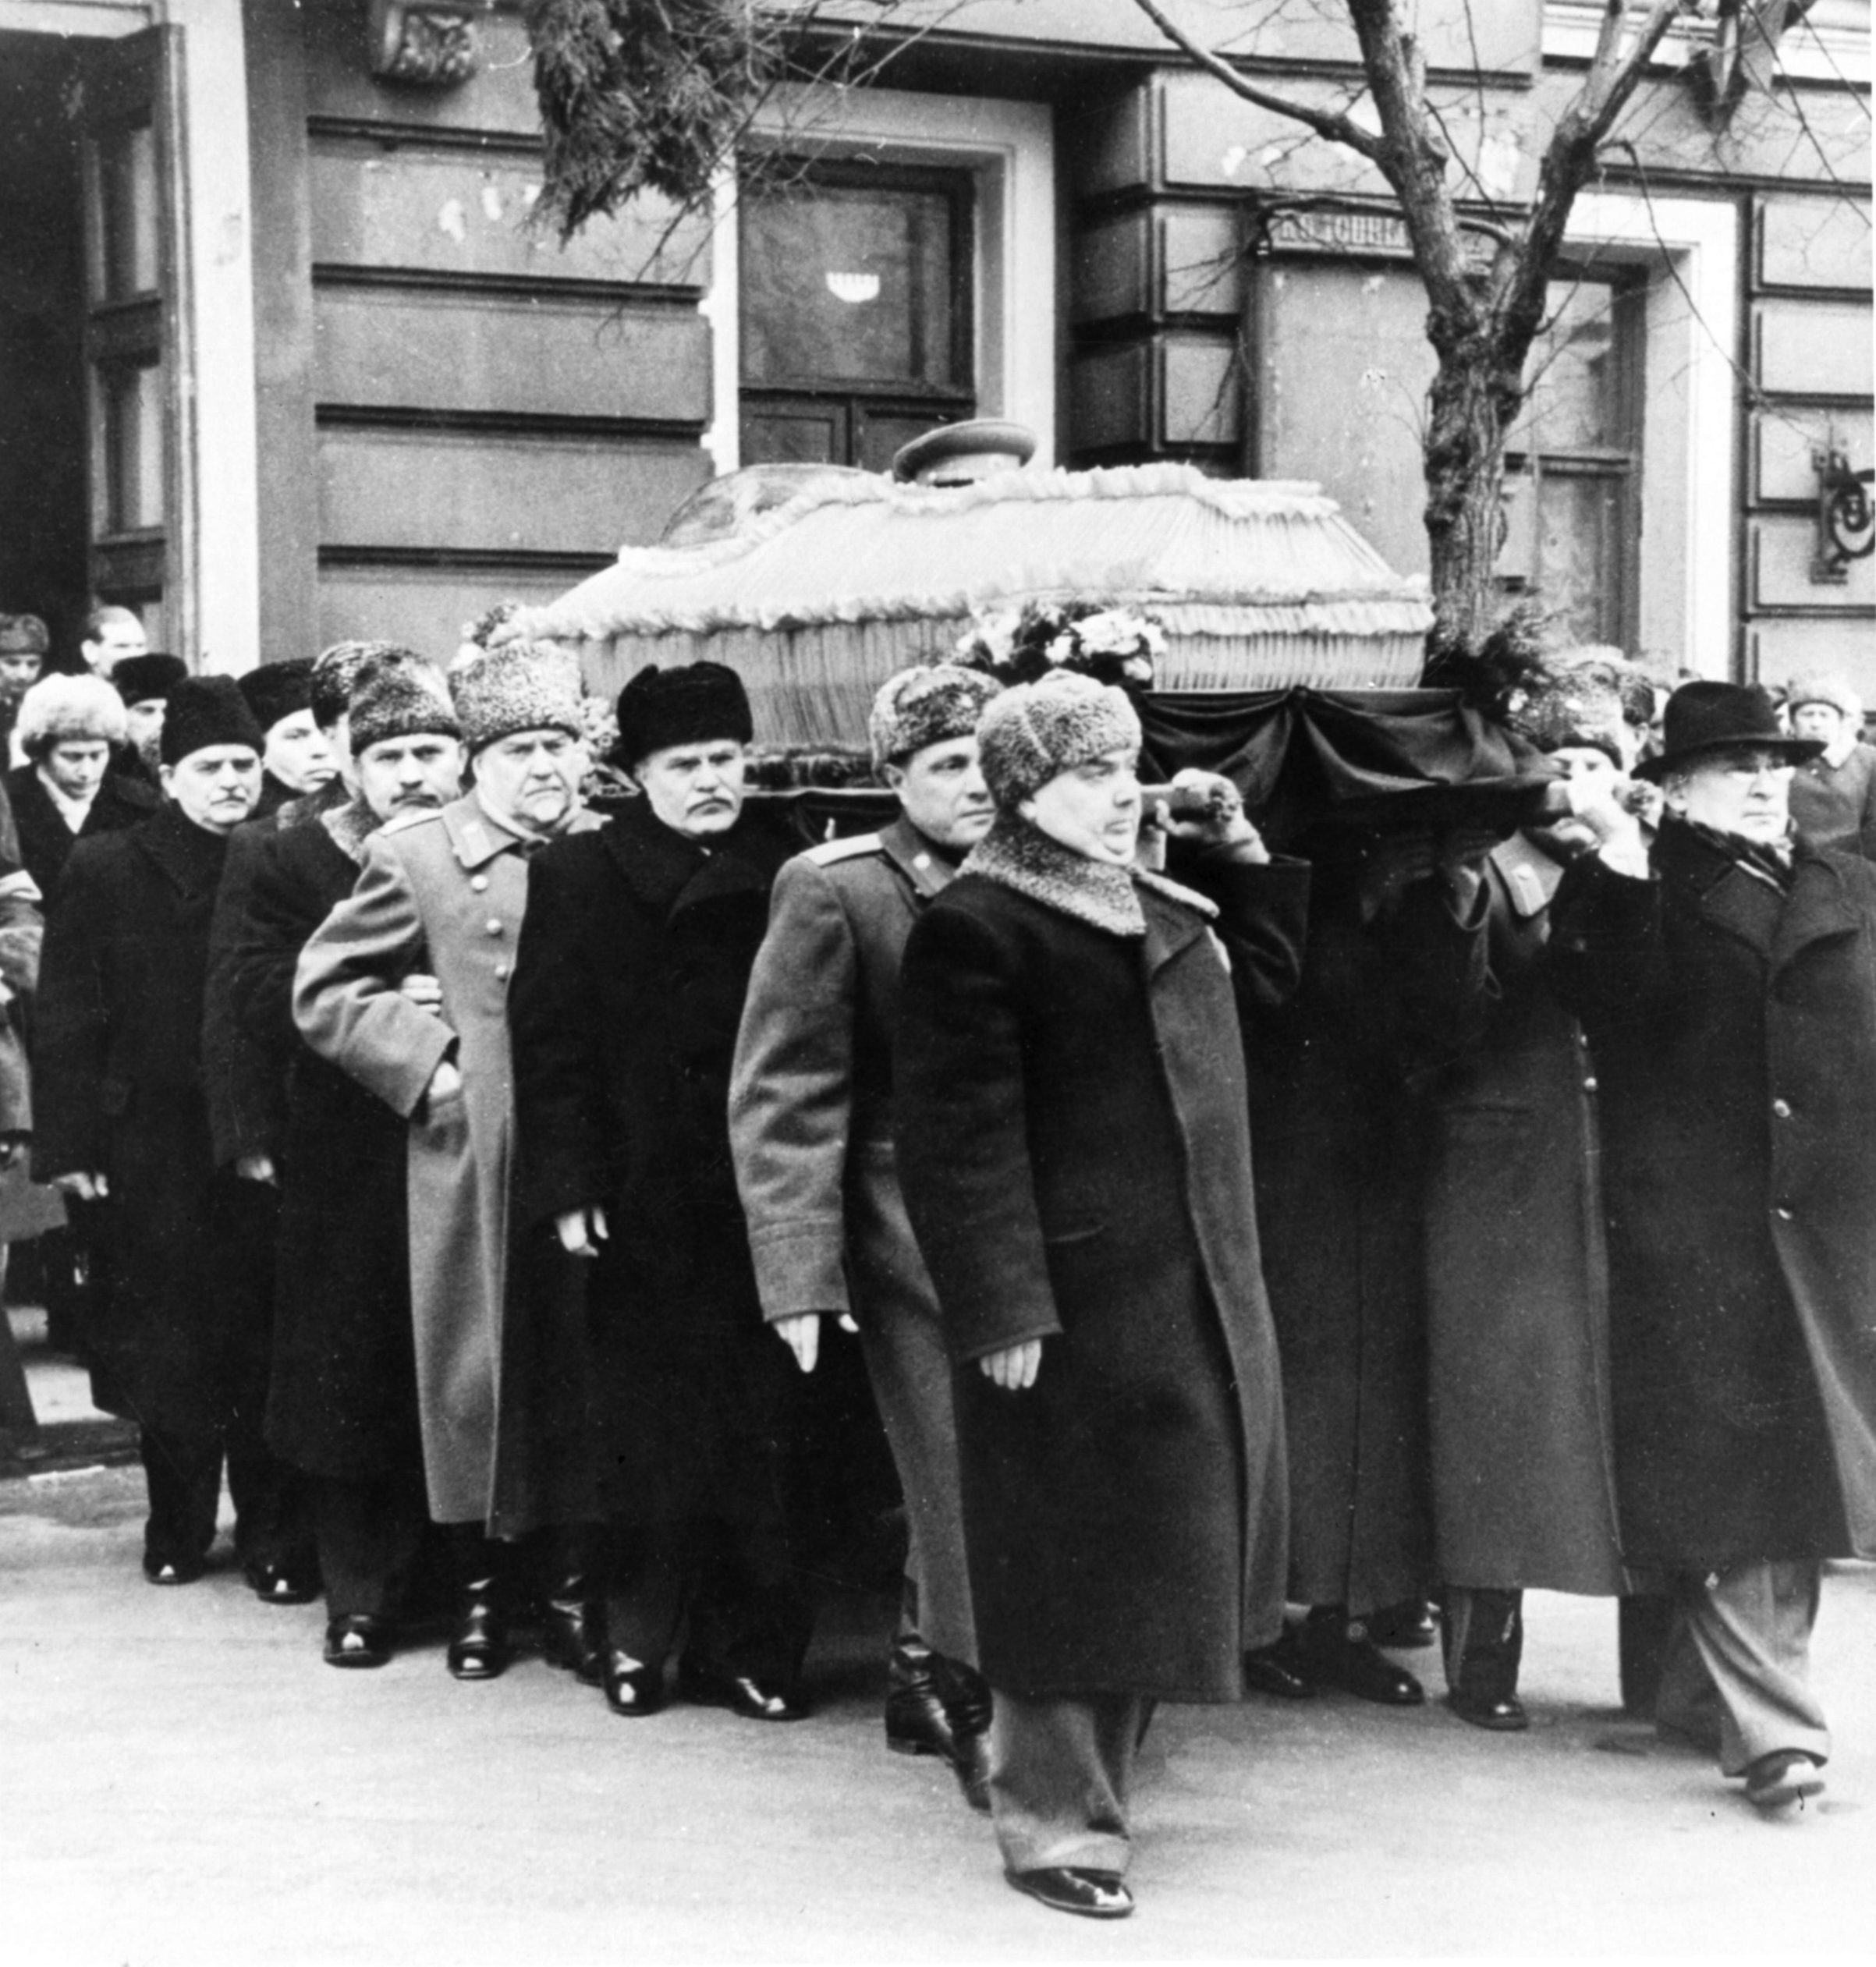 Stalin's coffin is  carried in Moscow, on March 9, 1953. Right to left: L.P. Beria (far right), Premier G.M. Malenkov, General Vassily Stalin, V.M. Molotov, Marshal N. Bulganin, L. Kaganovich, N. Shvernik.